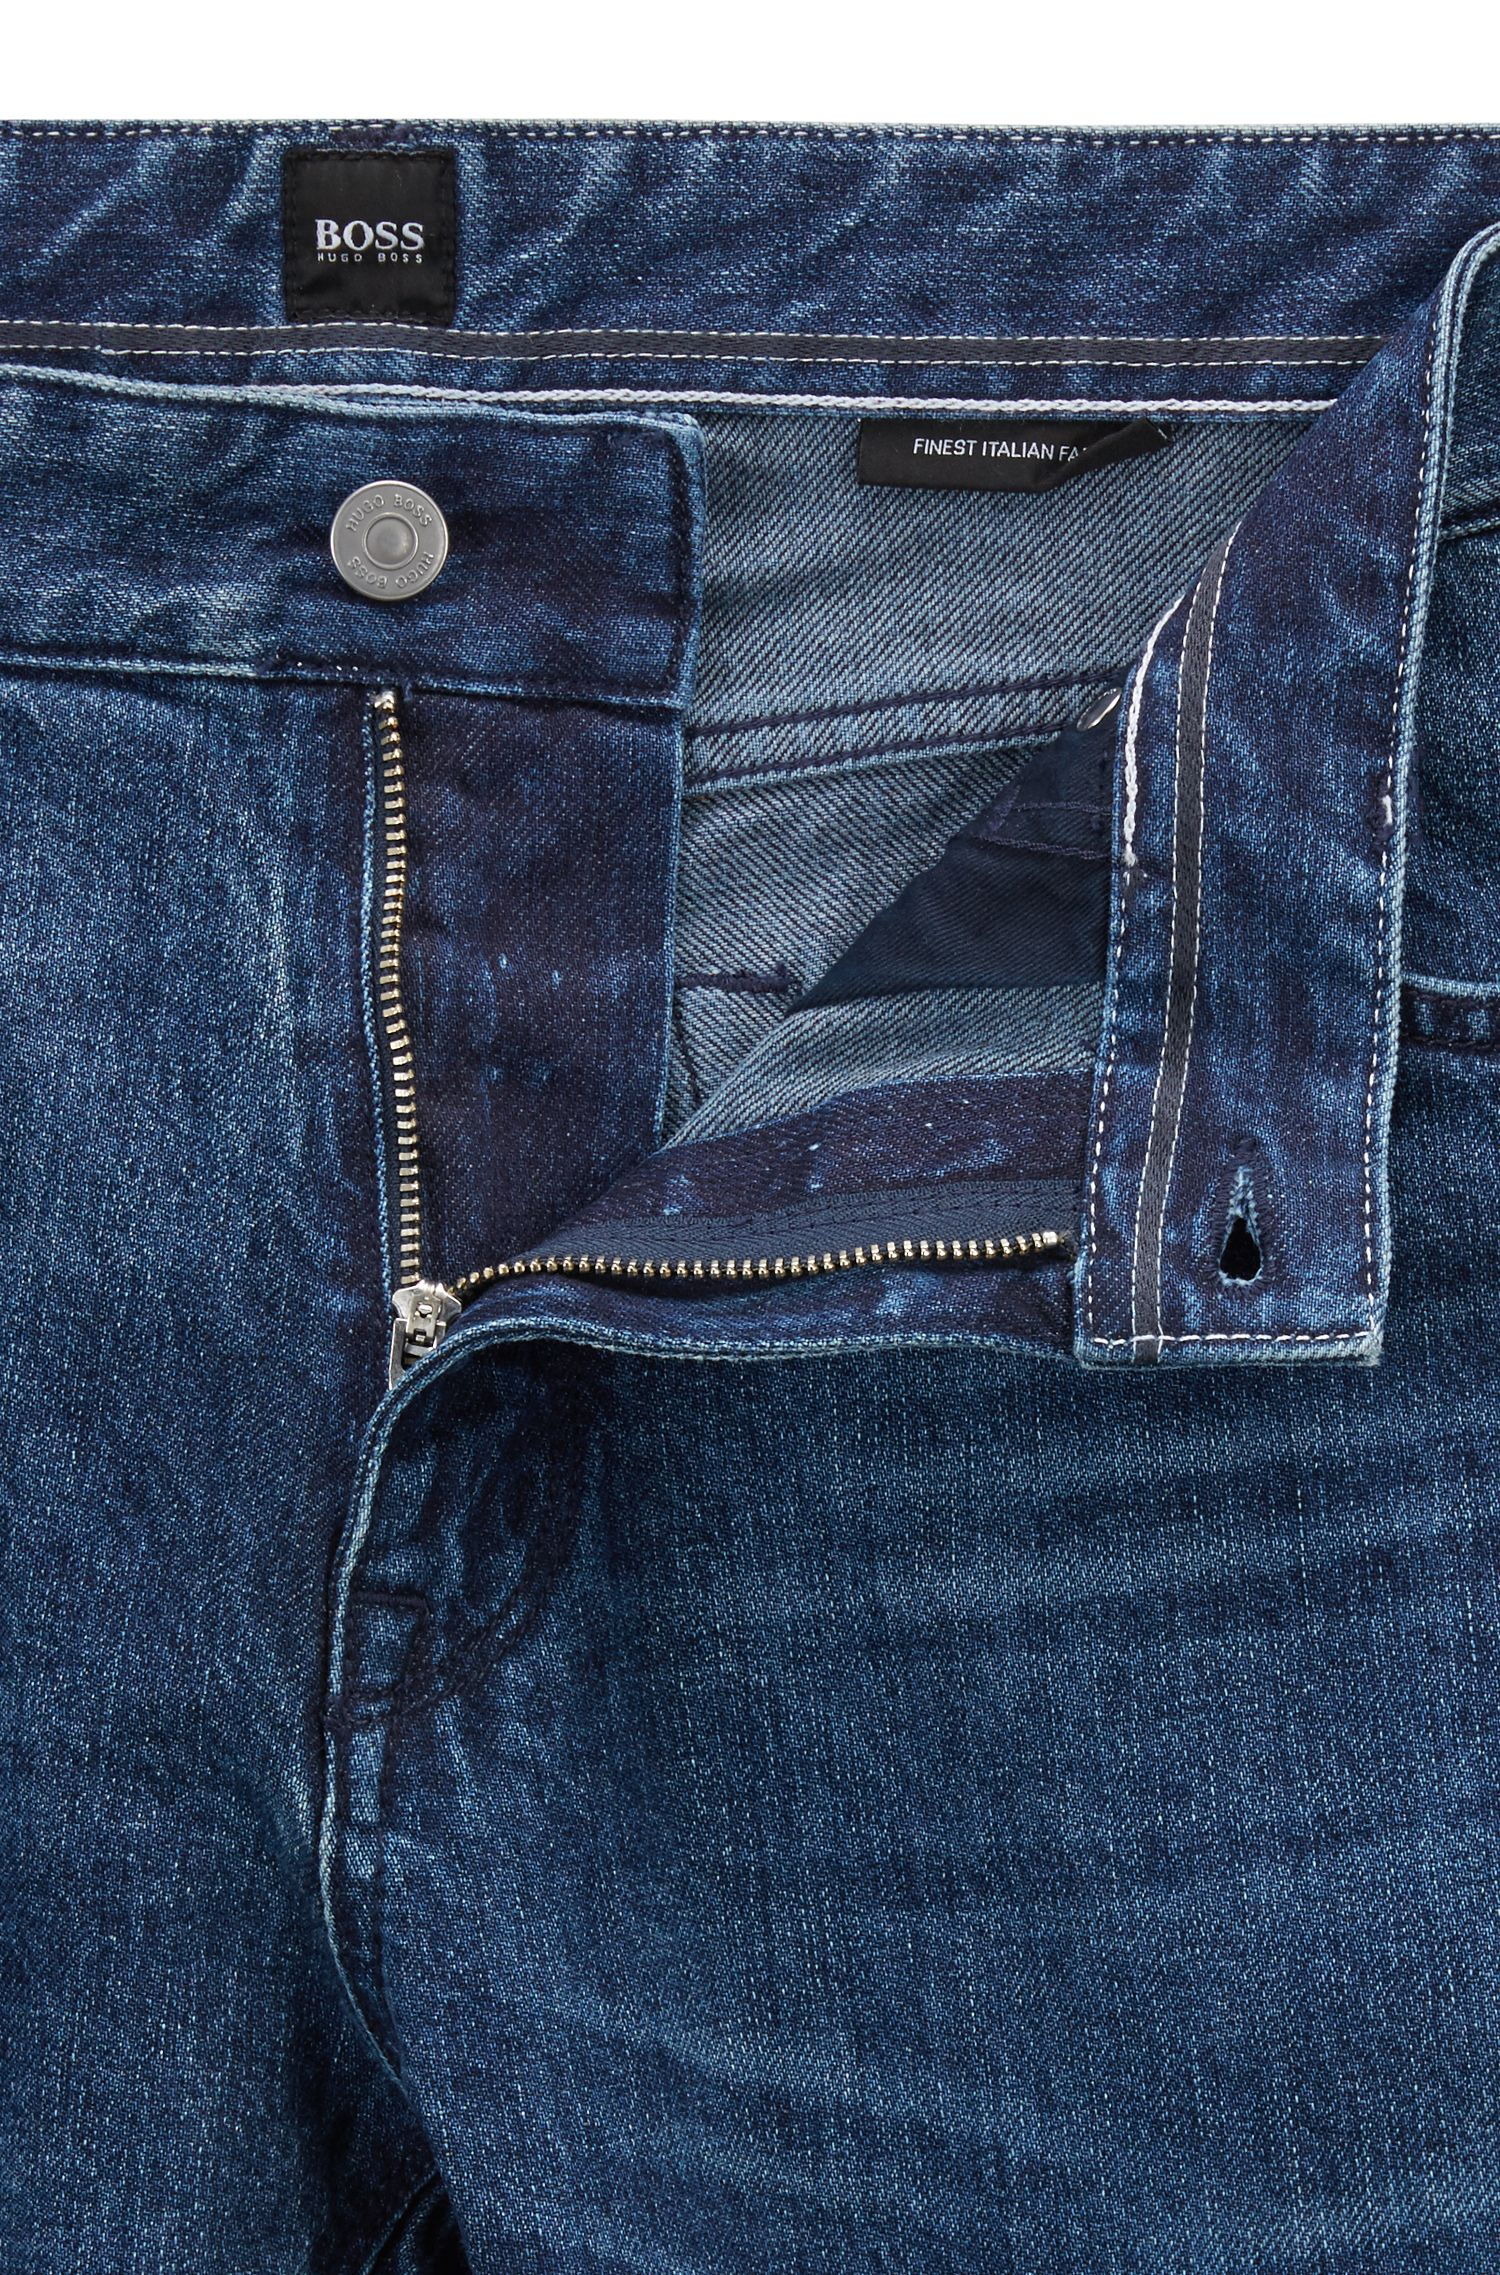 Jean Regular Fit en denim de coton recyclé italien, Bleu